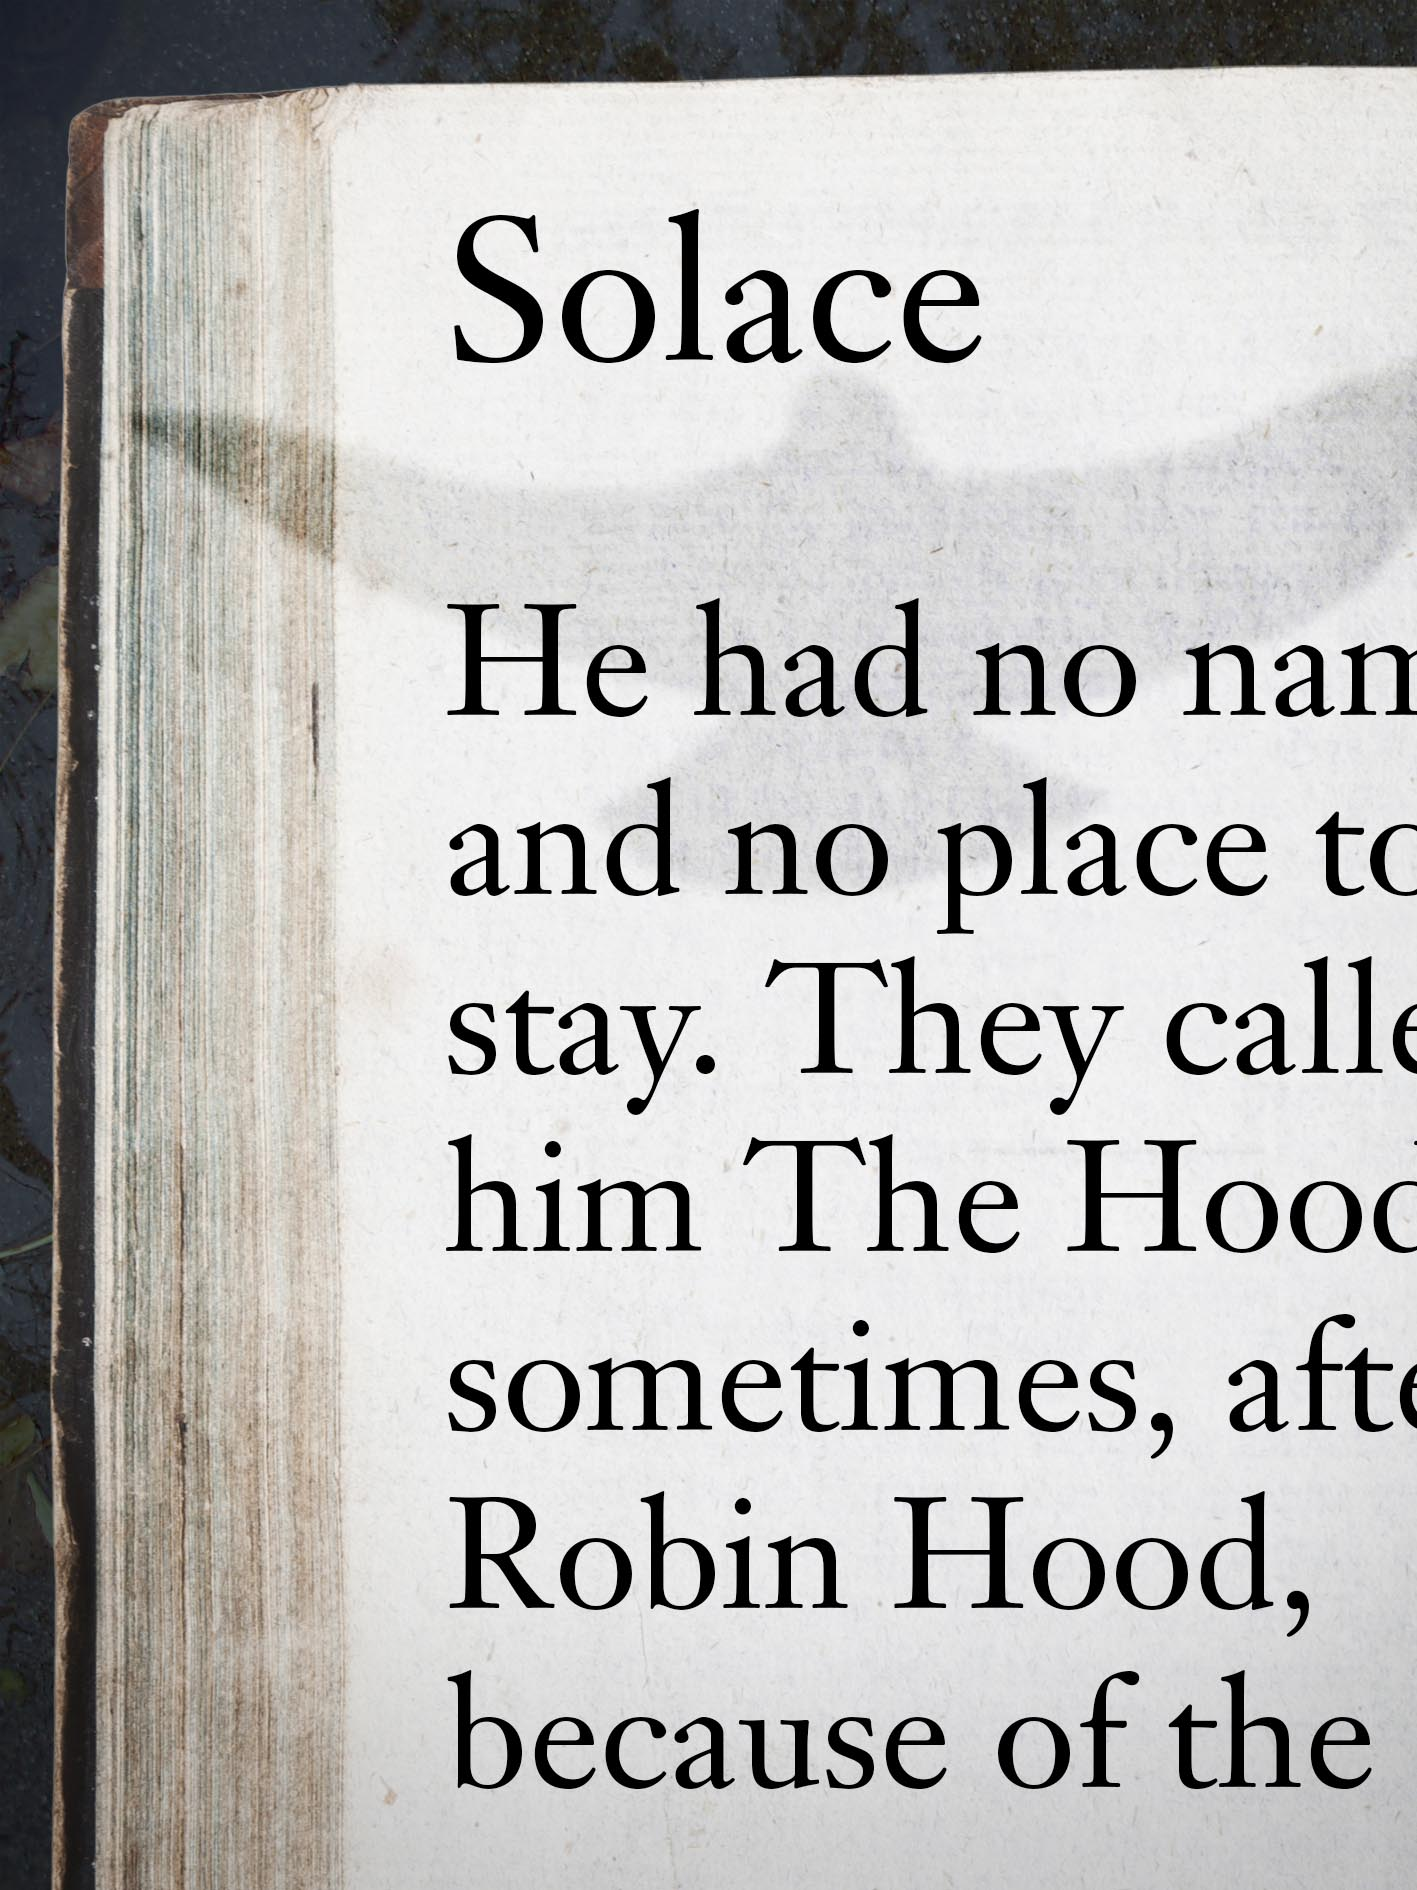 Solace - A homeless man, who has searched for God all his life, enters church on a rainy day.